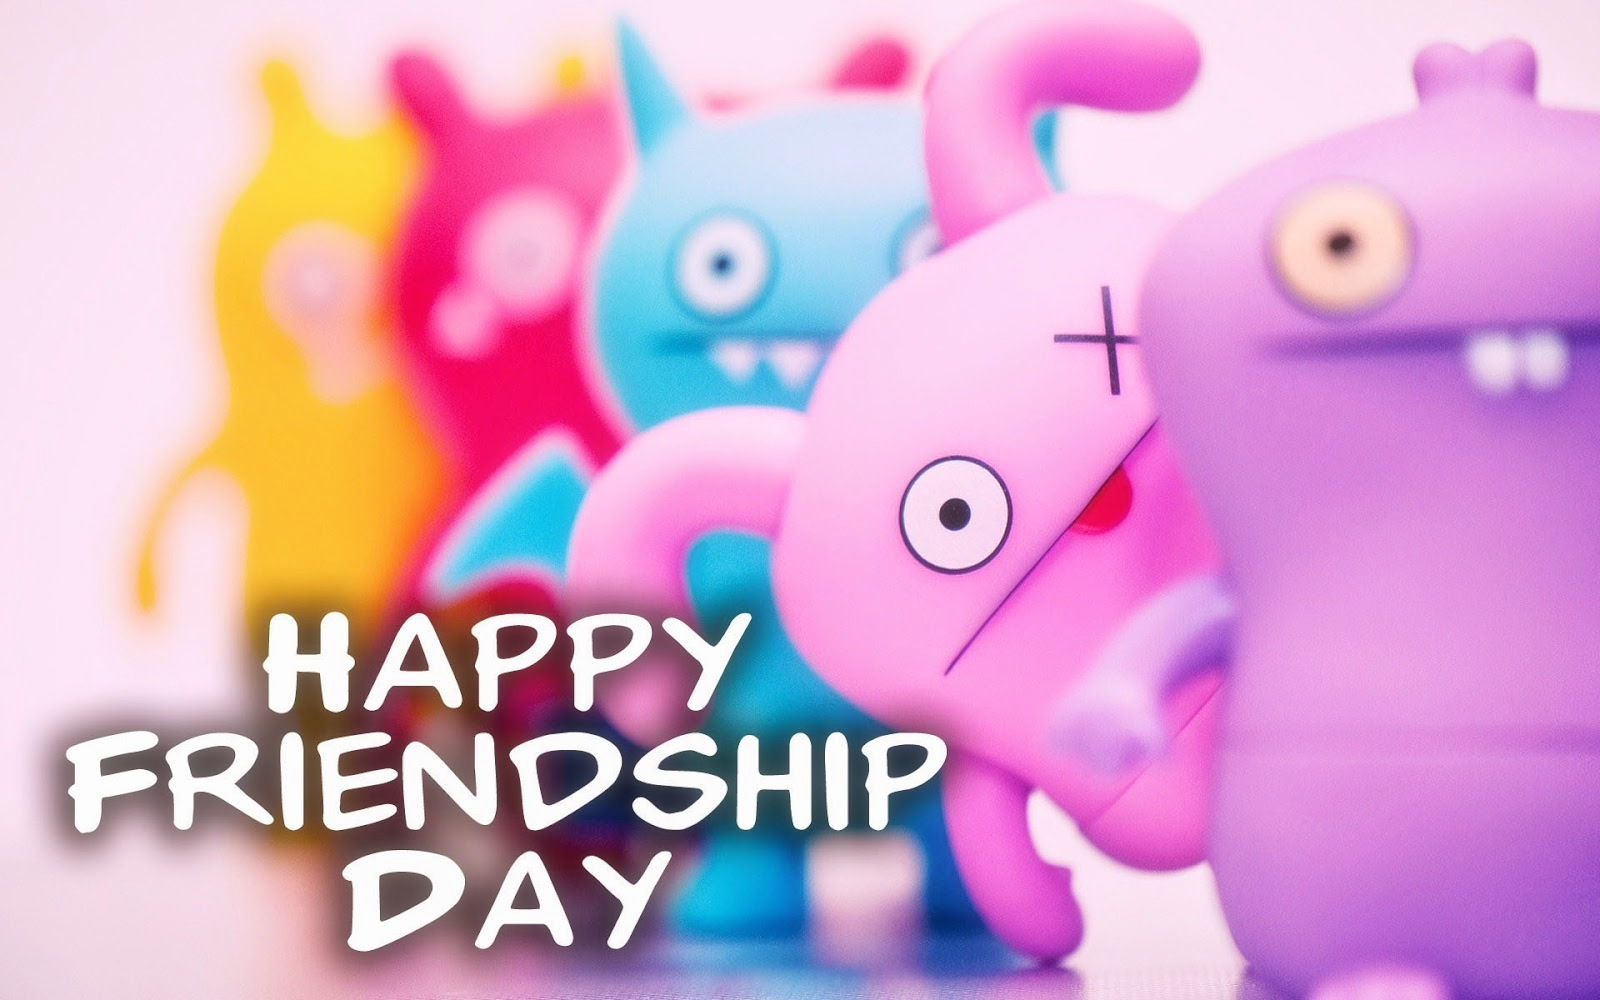 Friendship Day Whatsapp DP Images